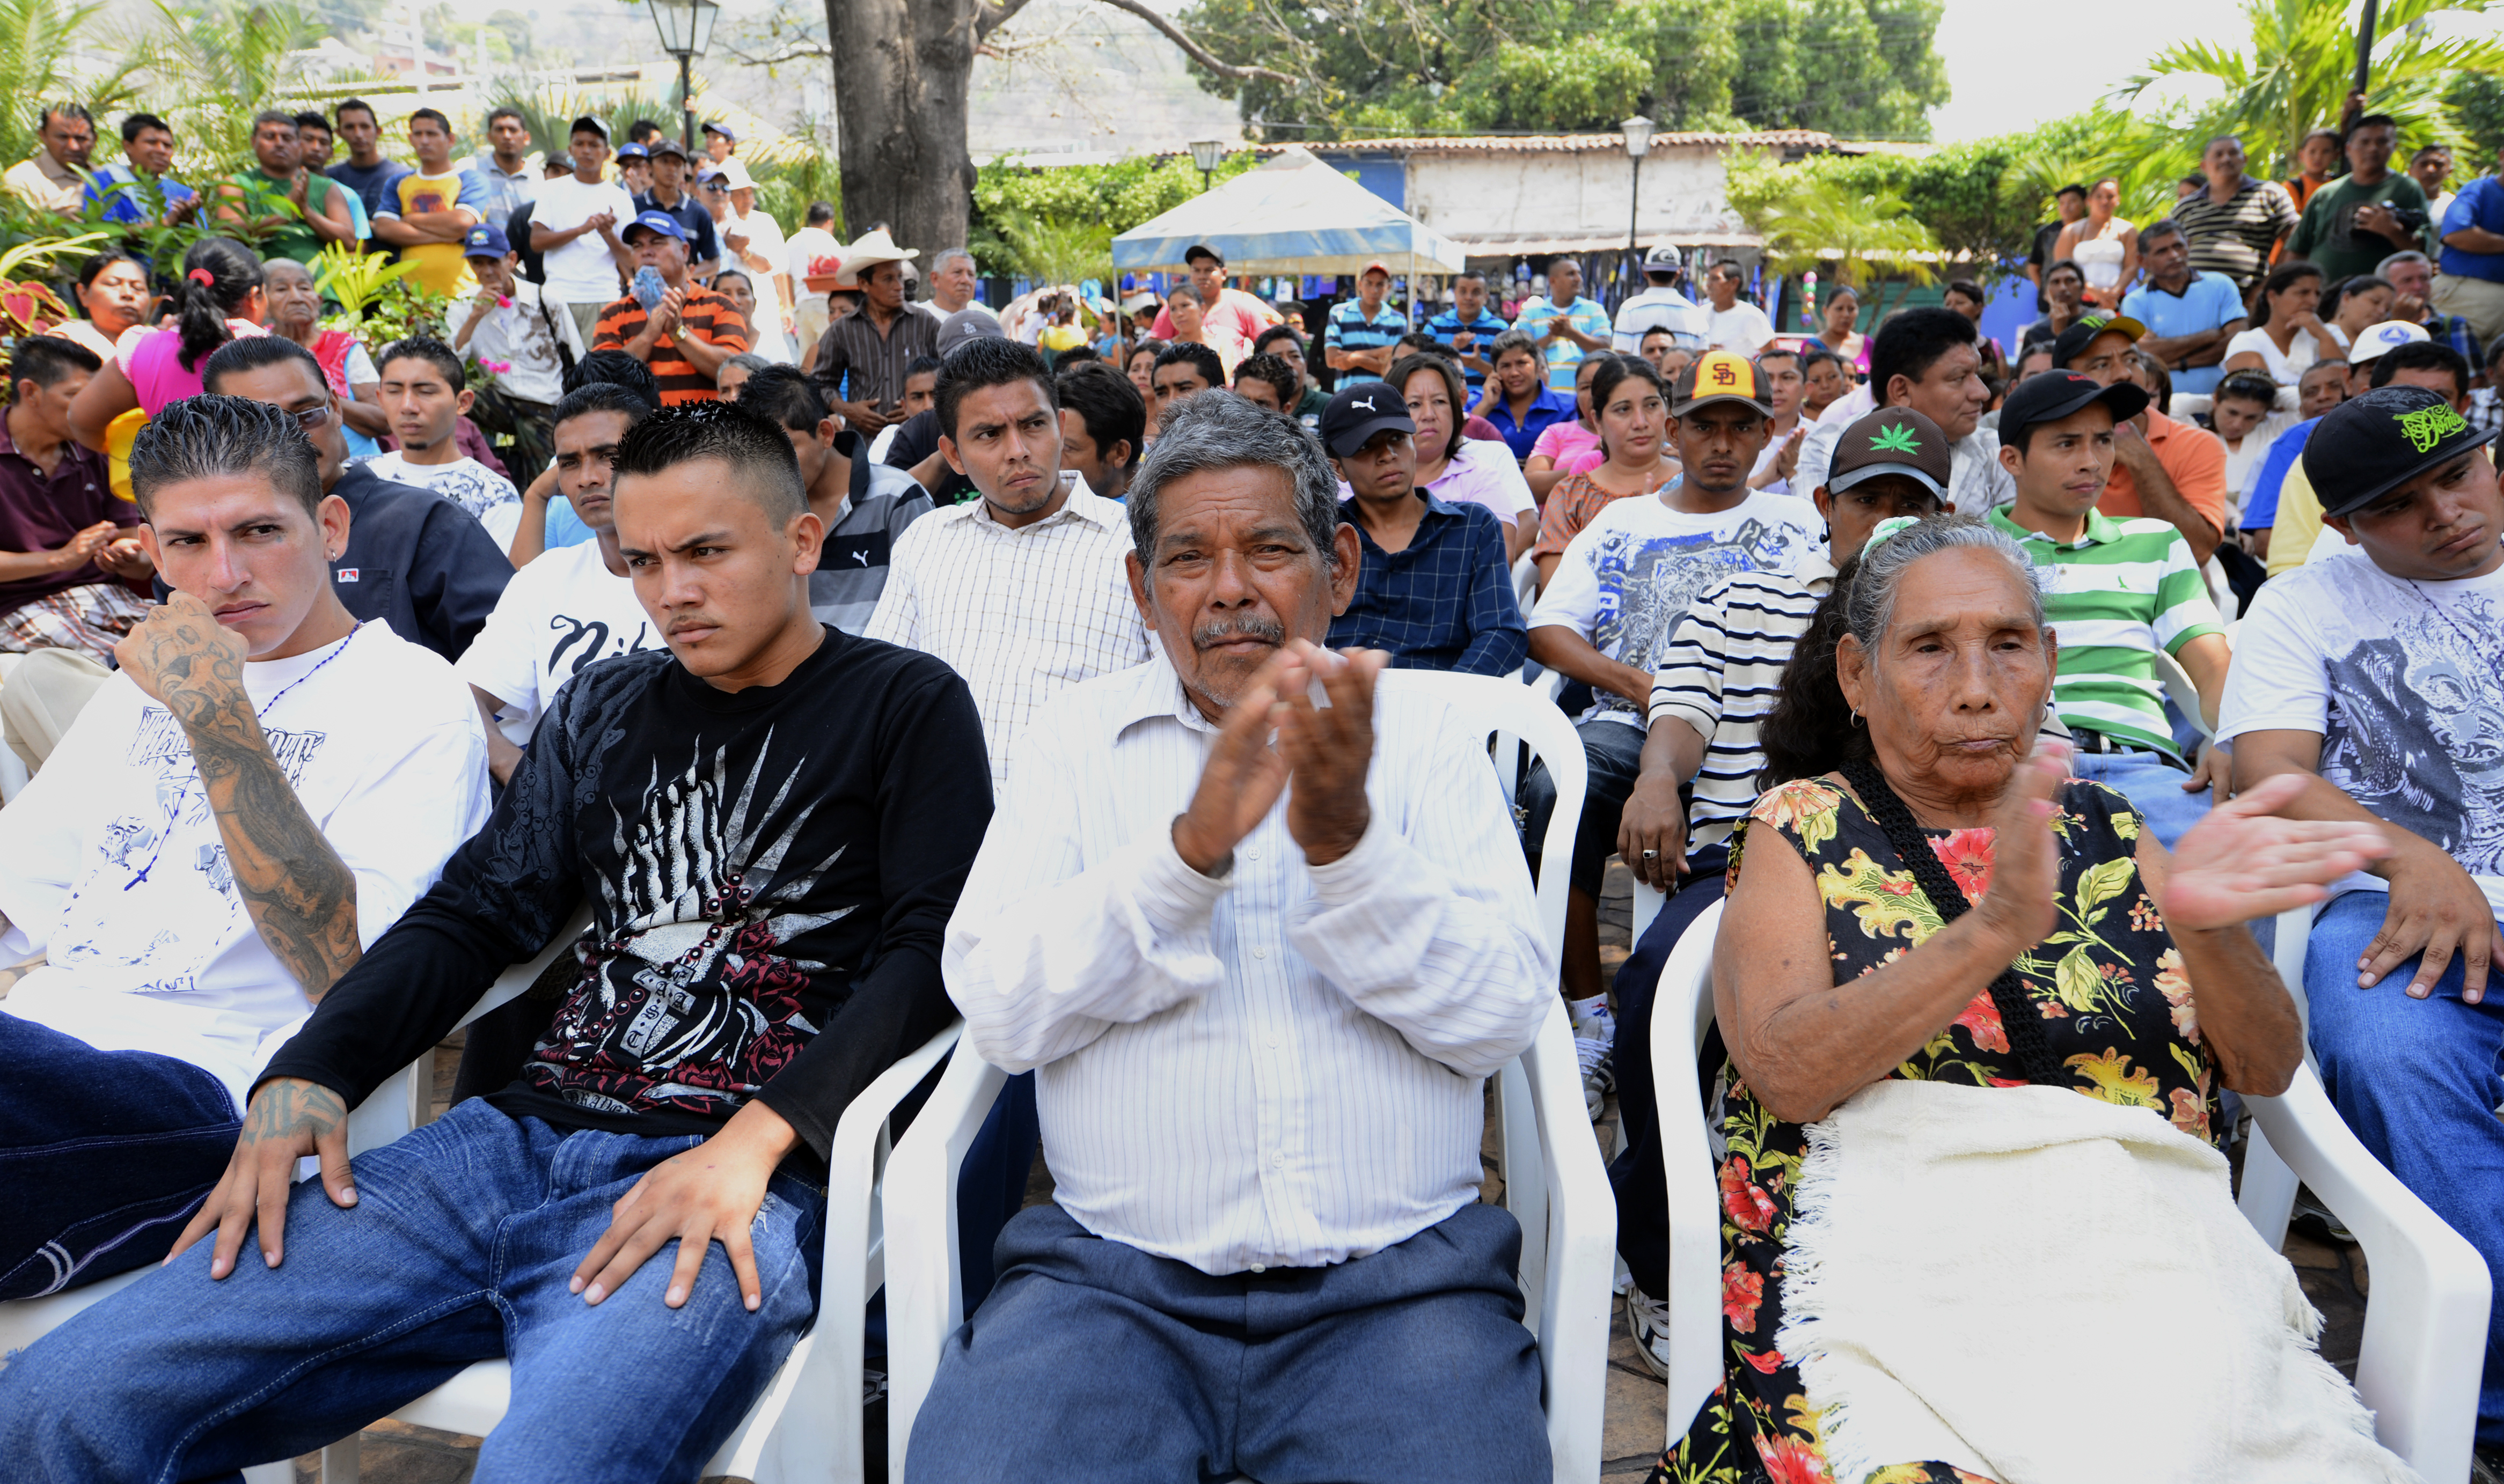 People attend a ceremony in which two feared street gangs of El Salvador signed a truce to keep the beach resort of Puerto de la Libertad free of violence, in this city about 35 km south of San Salvador, on March 1, 2013.